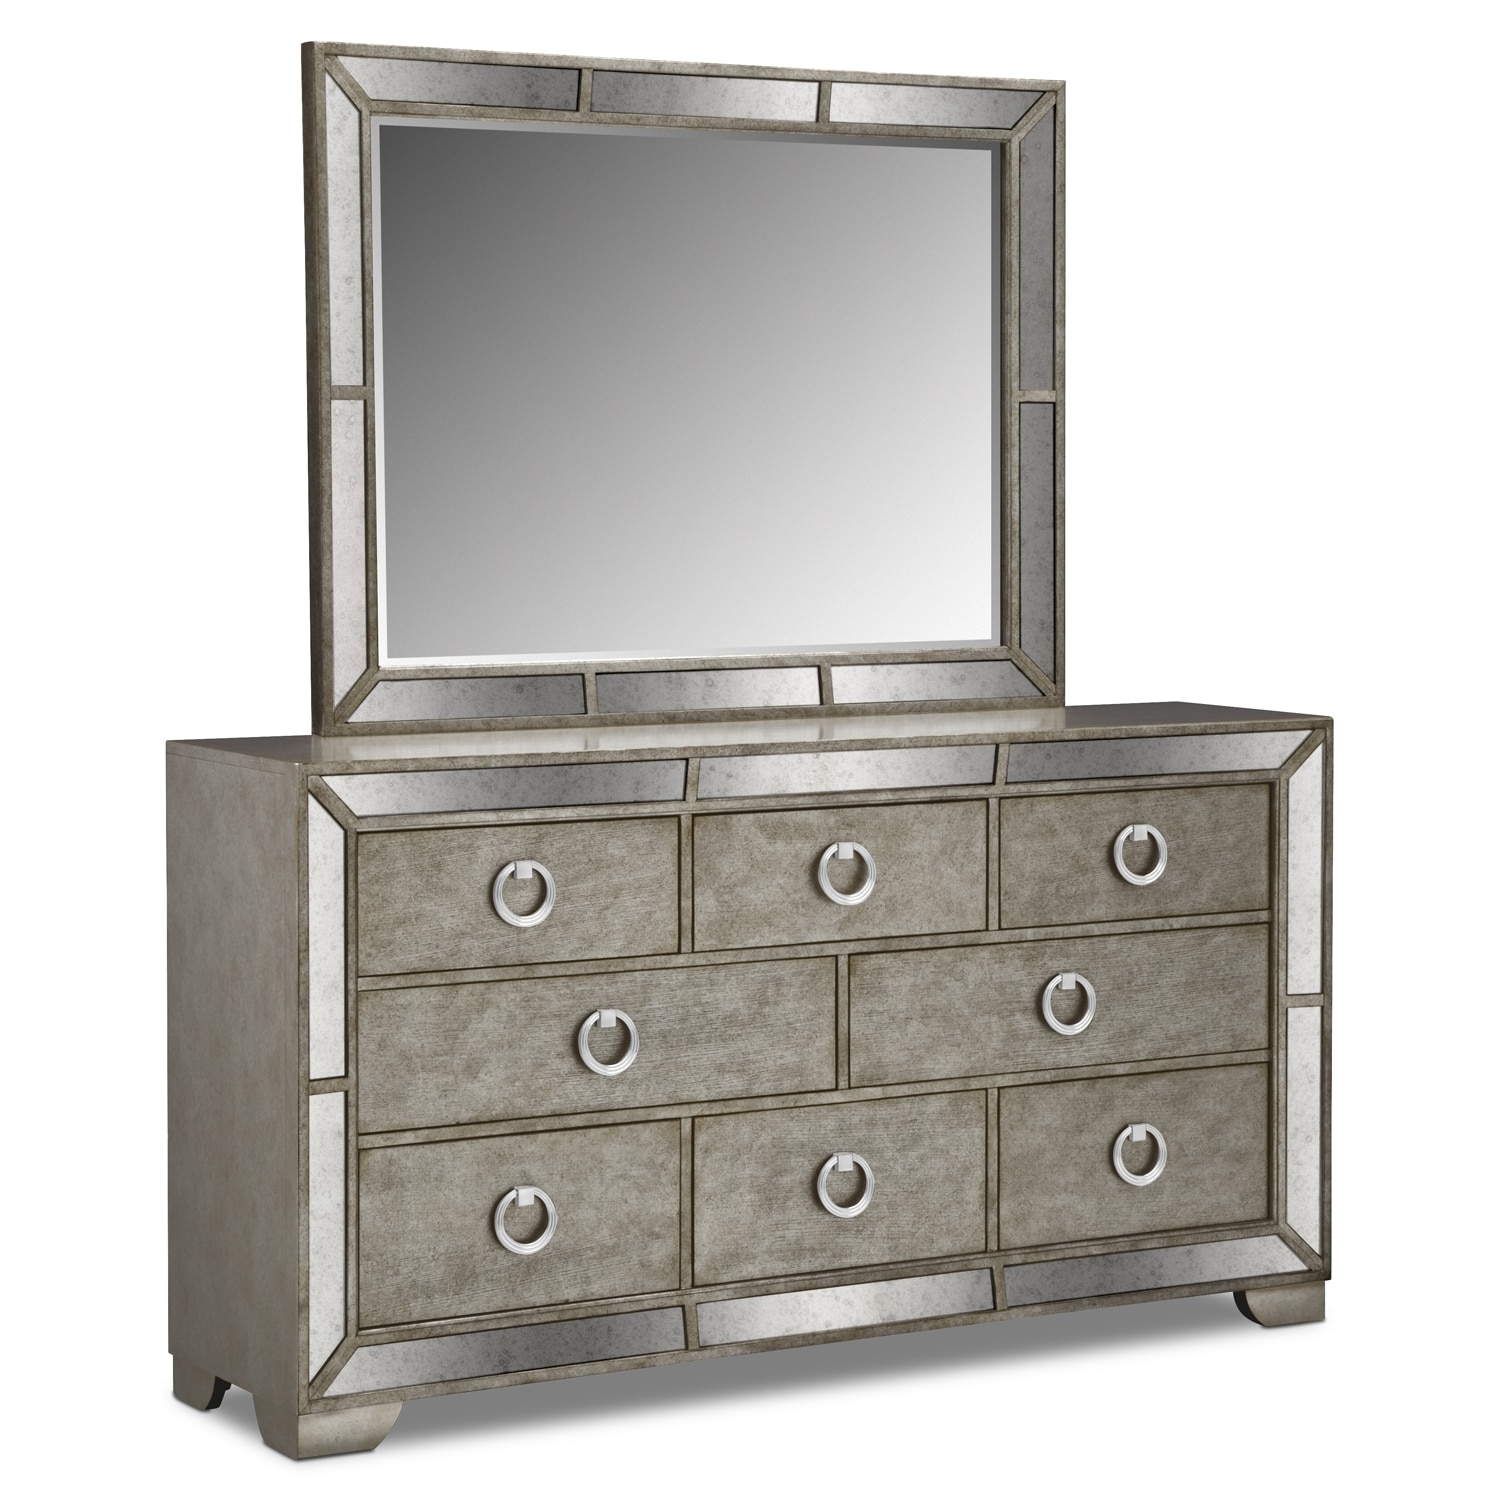 Angelina Dresser Mirror Value City Furniture. Bedroom Mirror Furniture